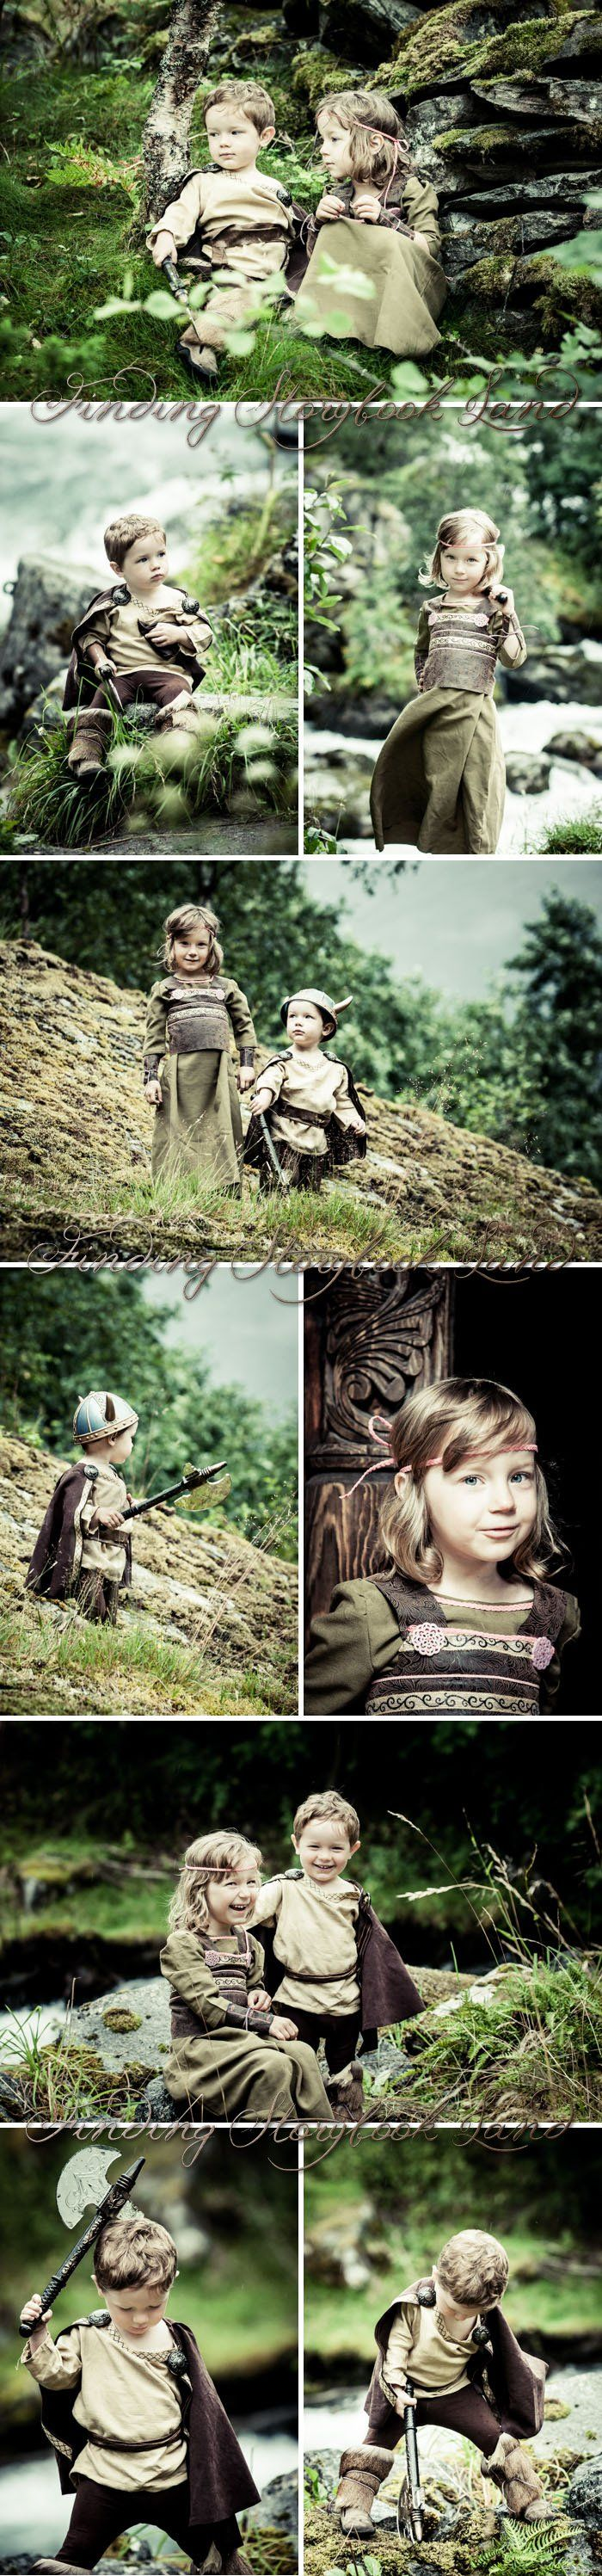 A basic guide on how to do a viking themed children's photo session with costume, prop, and location ideas and tutorials from findingstorybookland.com